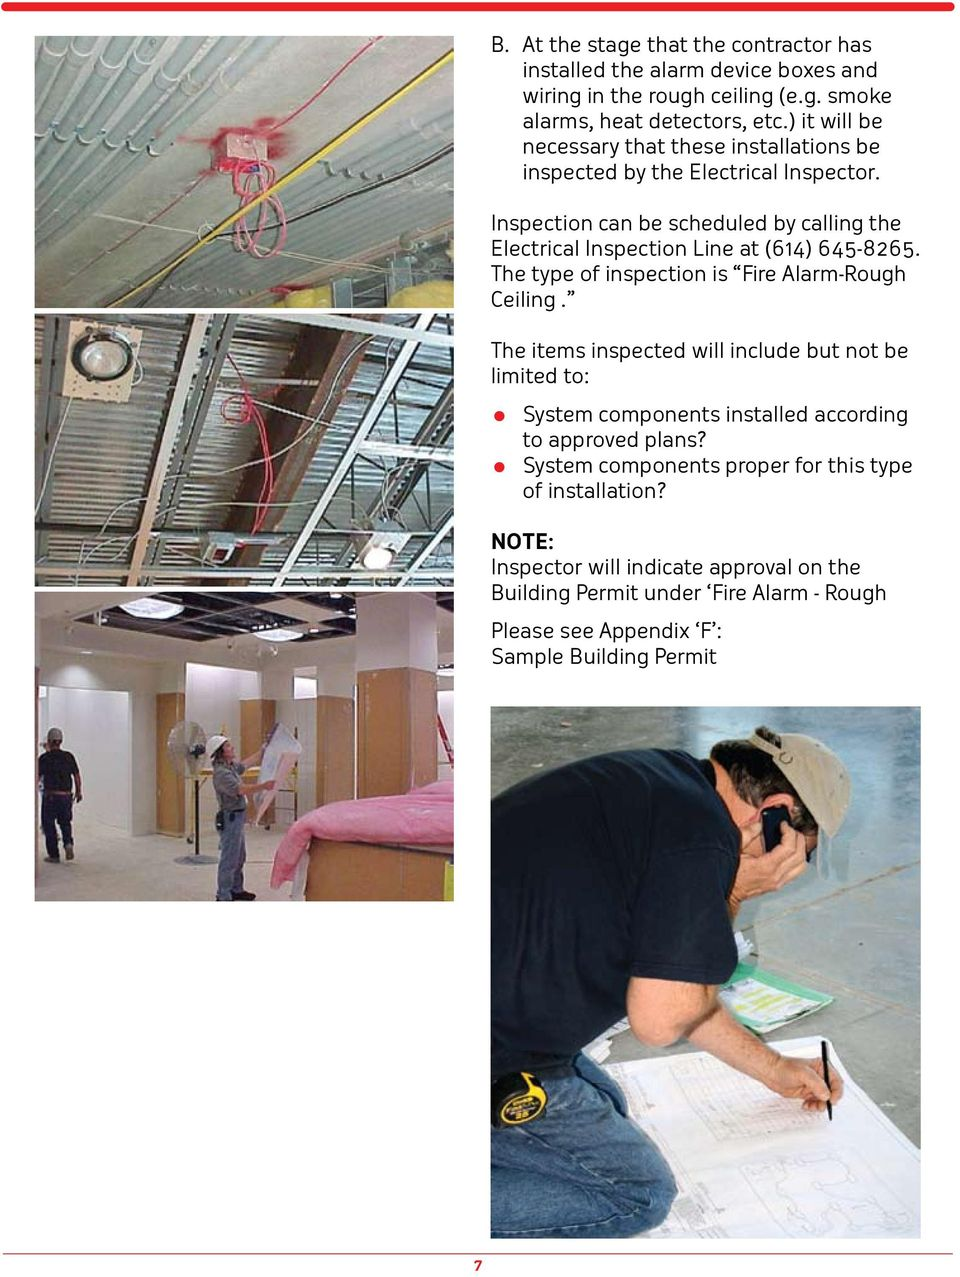 Inspection can be scheduled by calling the Electrical Inspection Line at (614) 645-8265. The type of inspection is Fire Alarm-Rough Ceiling.